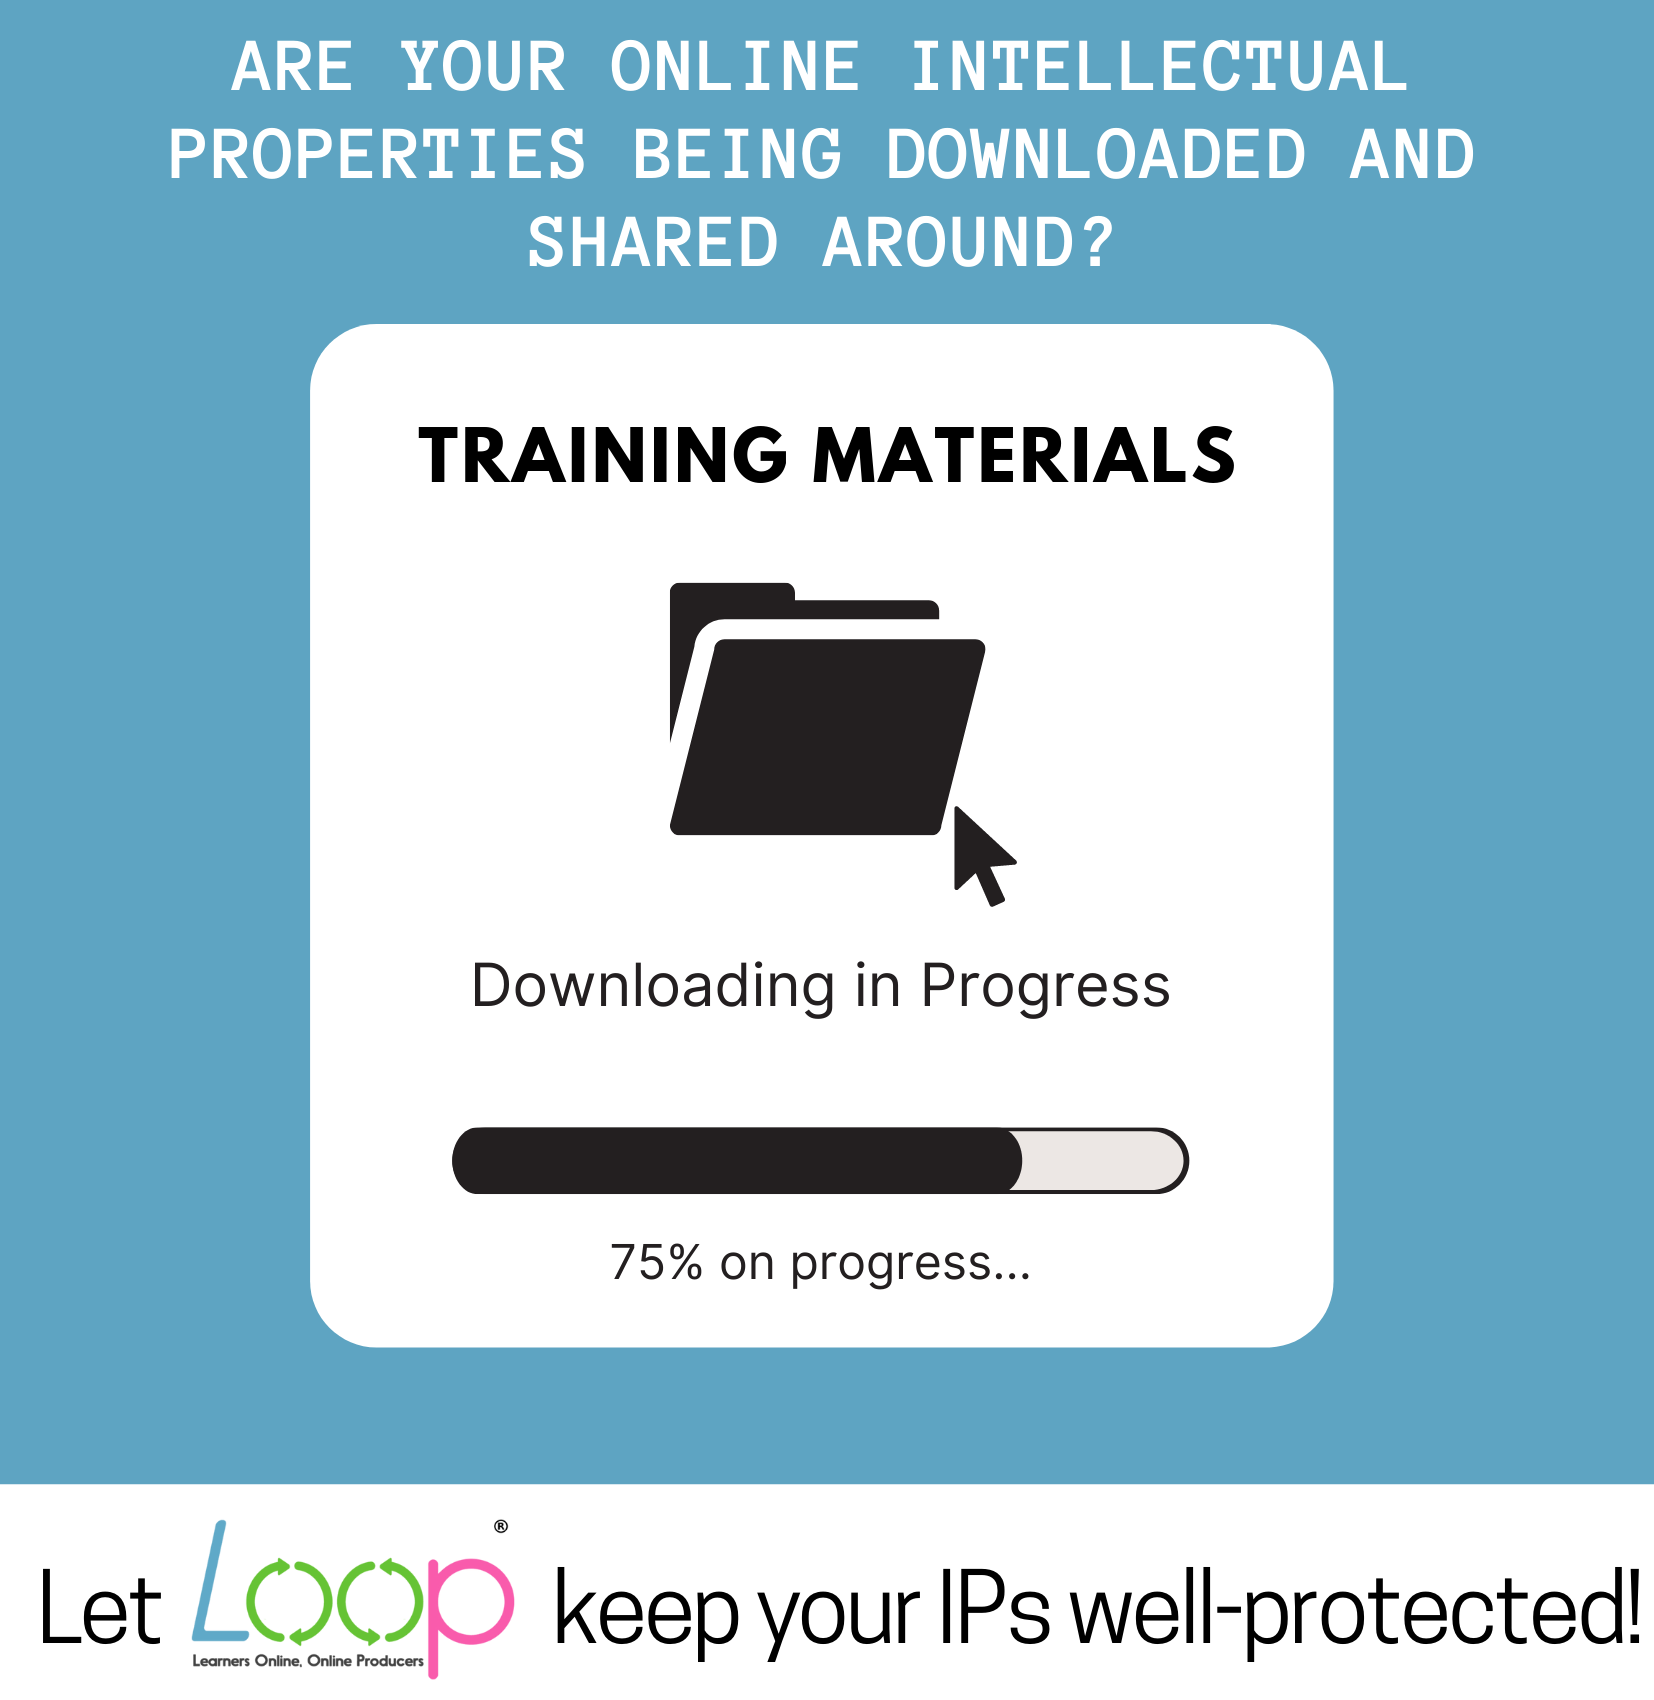 Do you need to protect your Intellectual Properties?